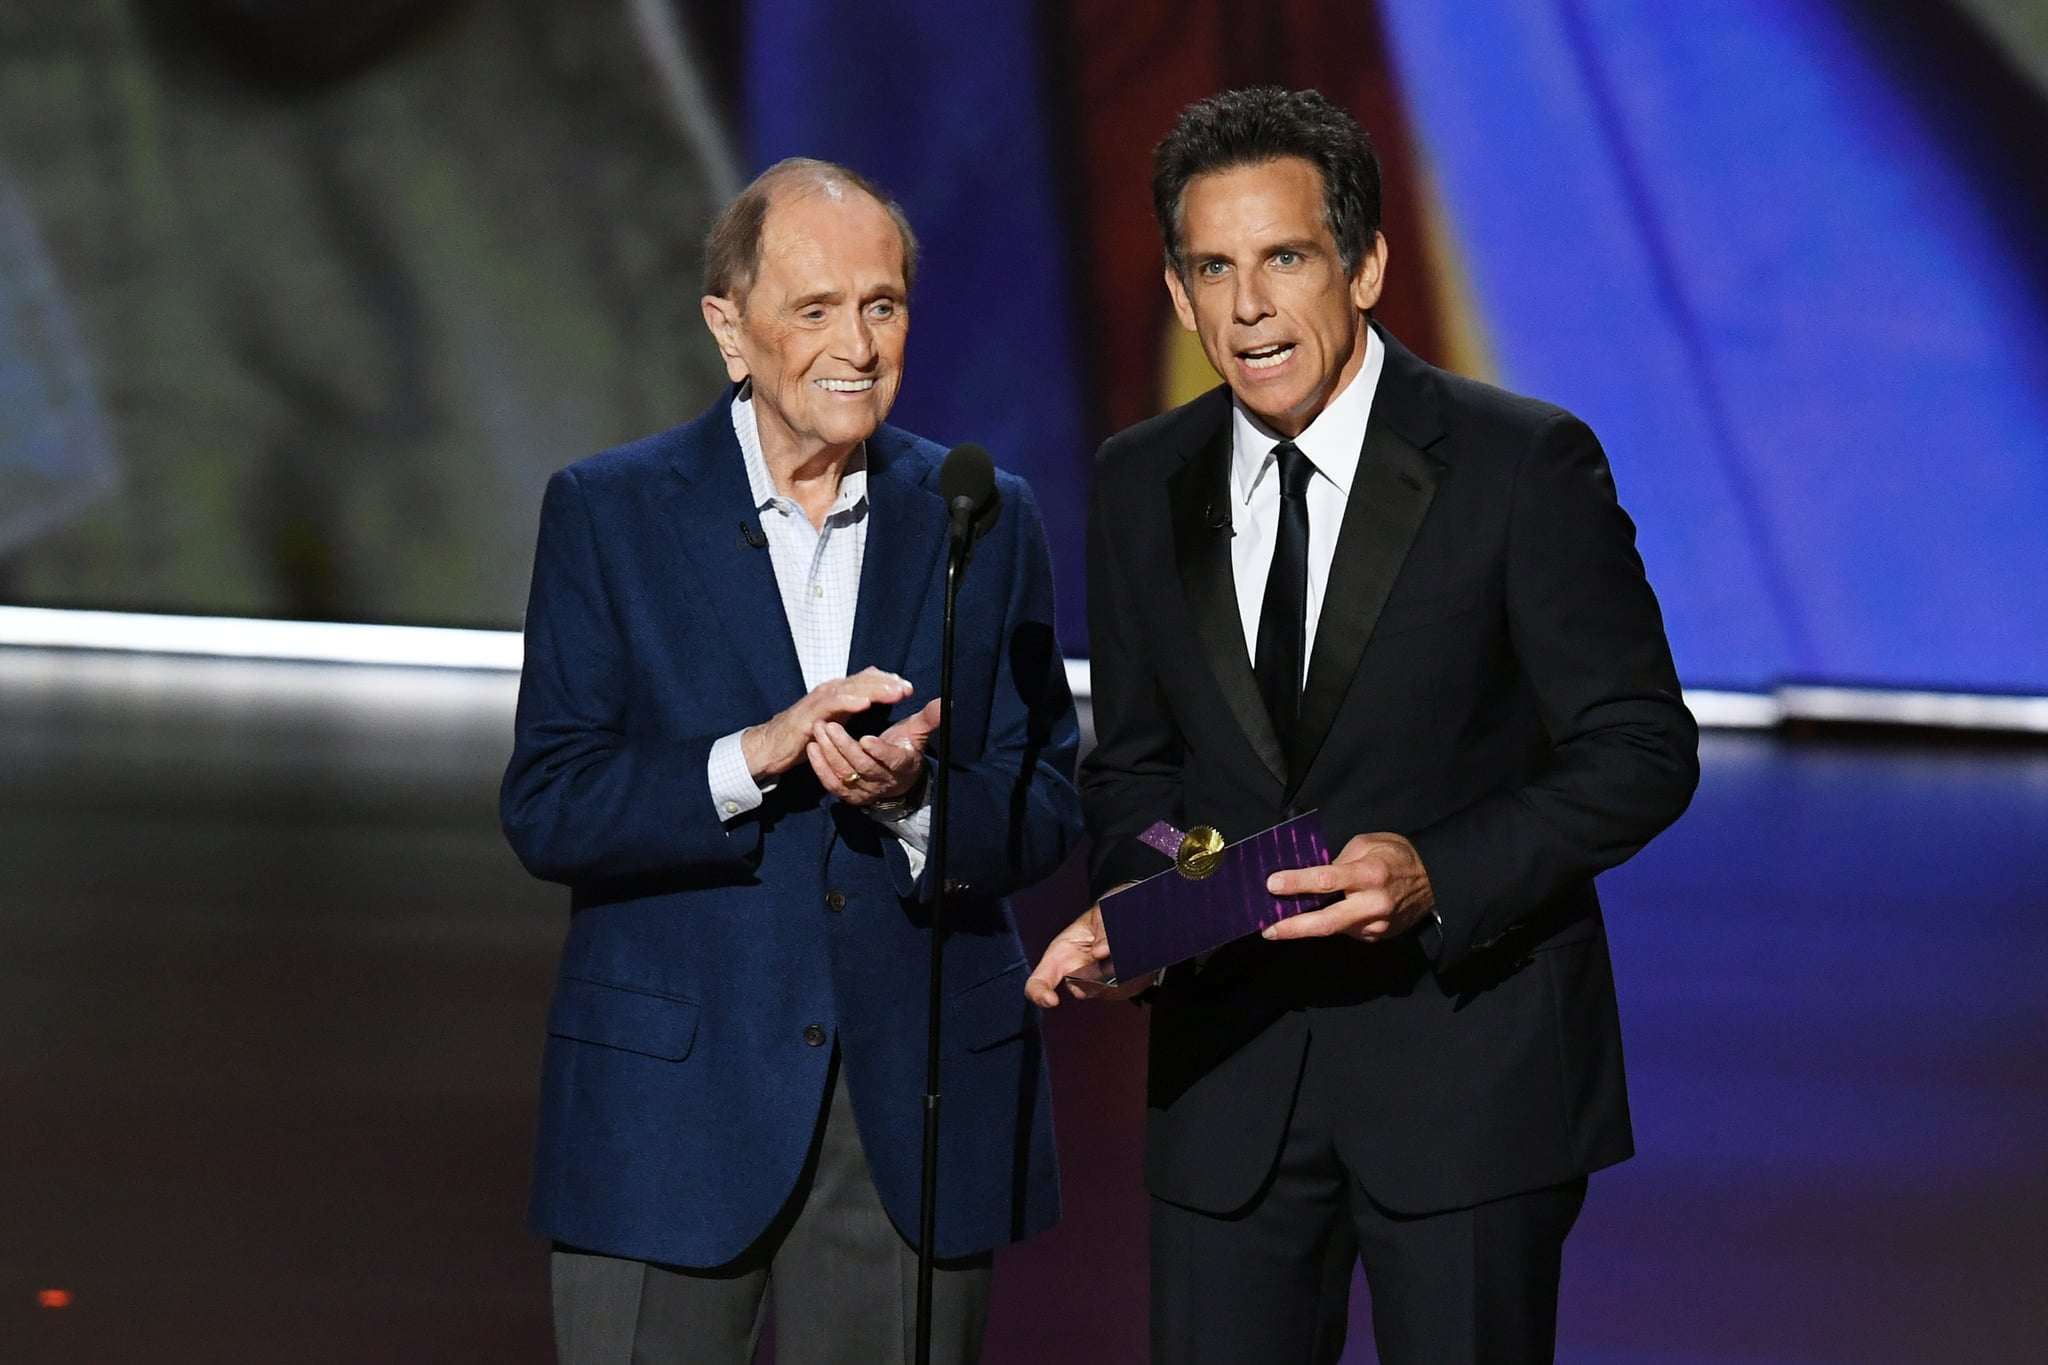 LOS ANGELES, CALIFORNIA - SEPTEMBER 22: (L-R) Bob Newhart and Ben Stiller speak onstage during the 71st Emmy Awards at Microsoft Theater on September 22, 2019 in Los Angeles, California. (Photo by Kevin Winter/Getty Images)